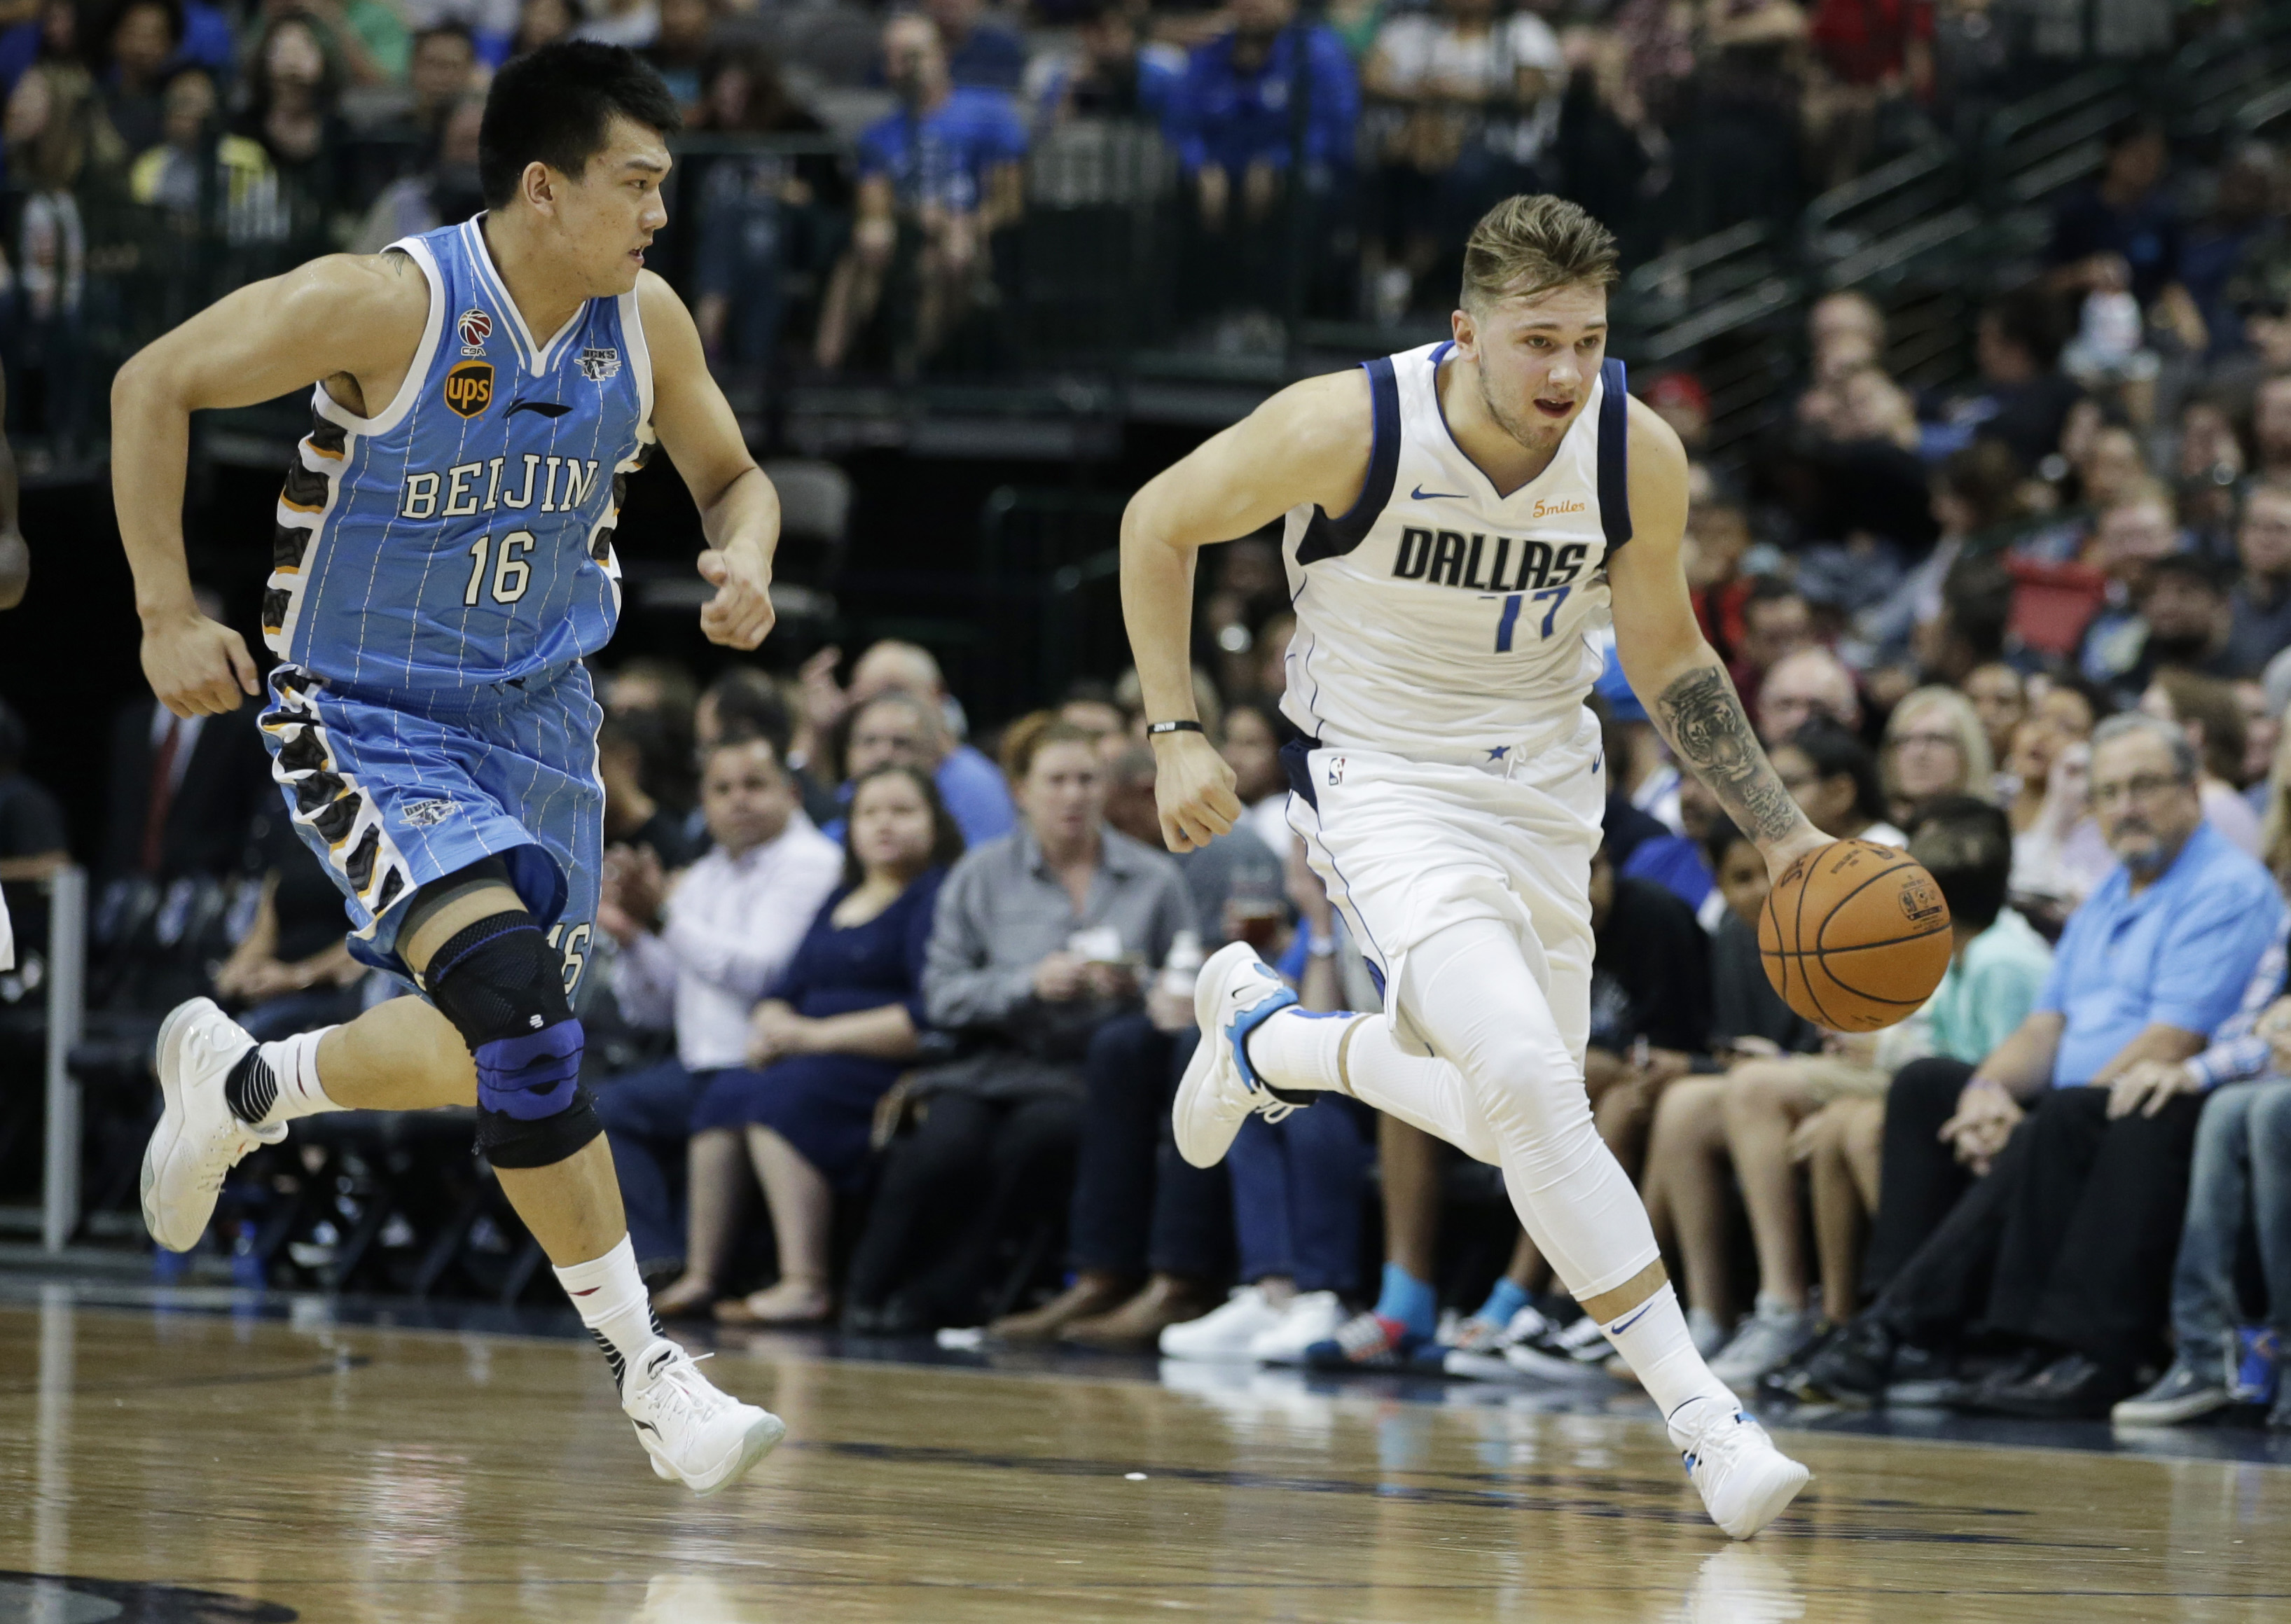 Watch: Luka Doncic dazzles, scores with magicianlike maneuver